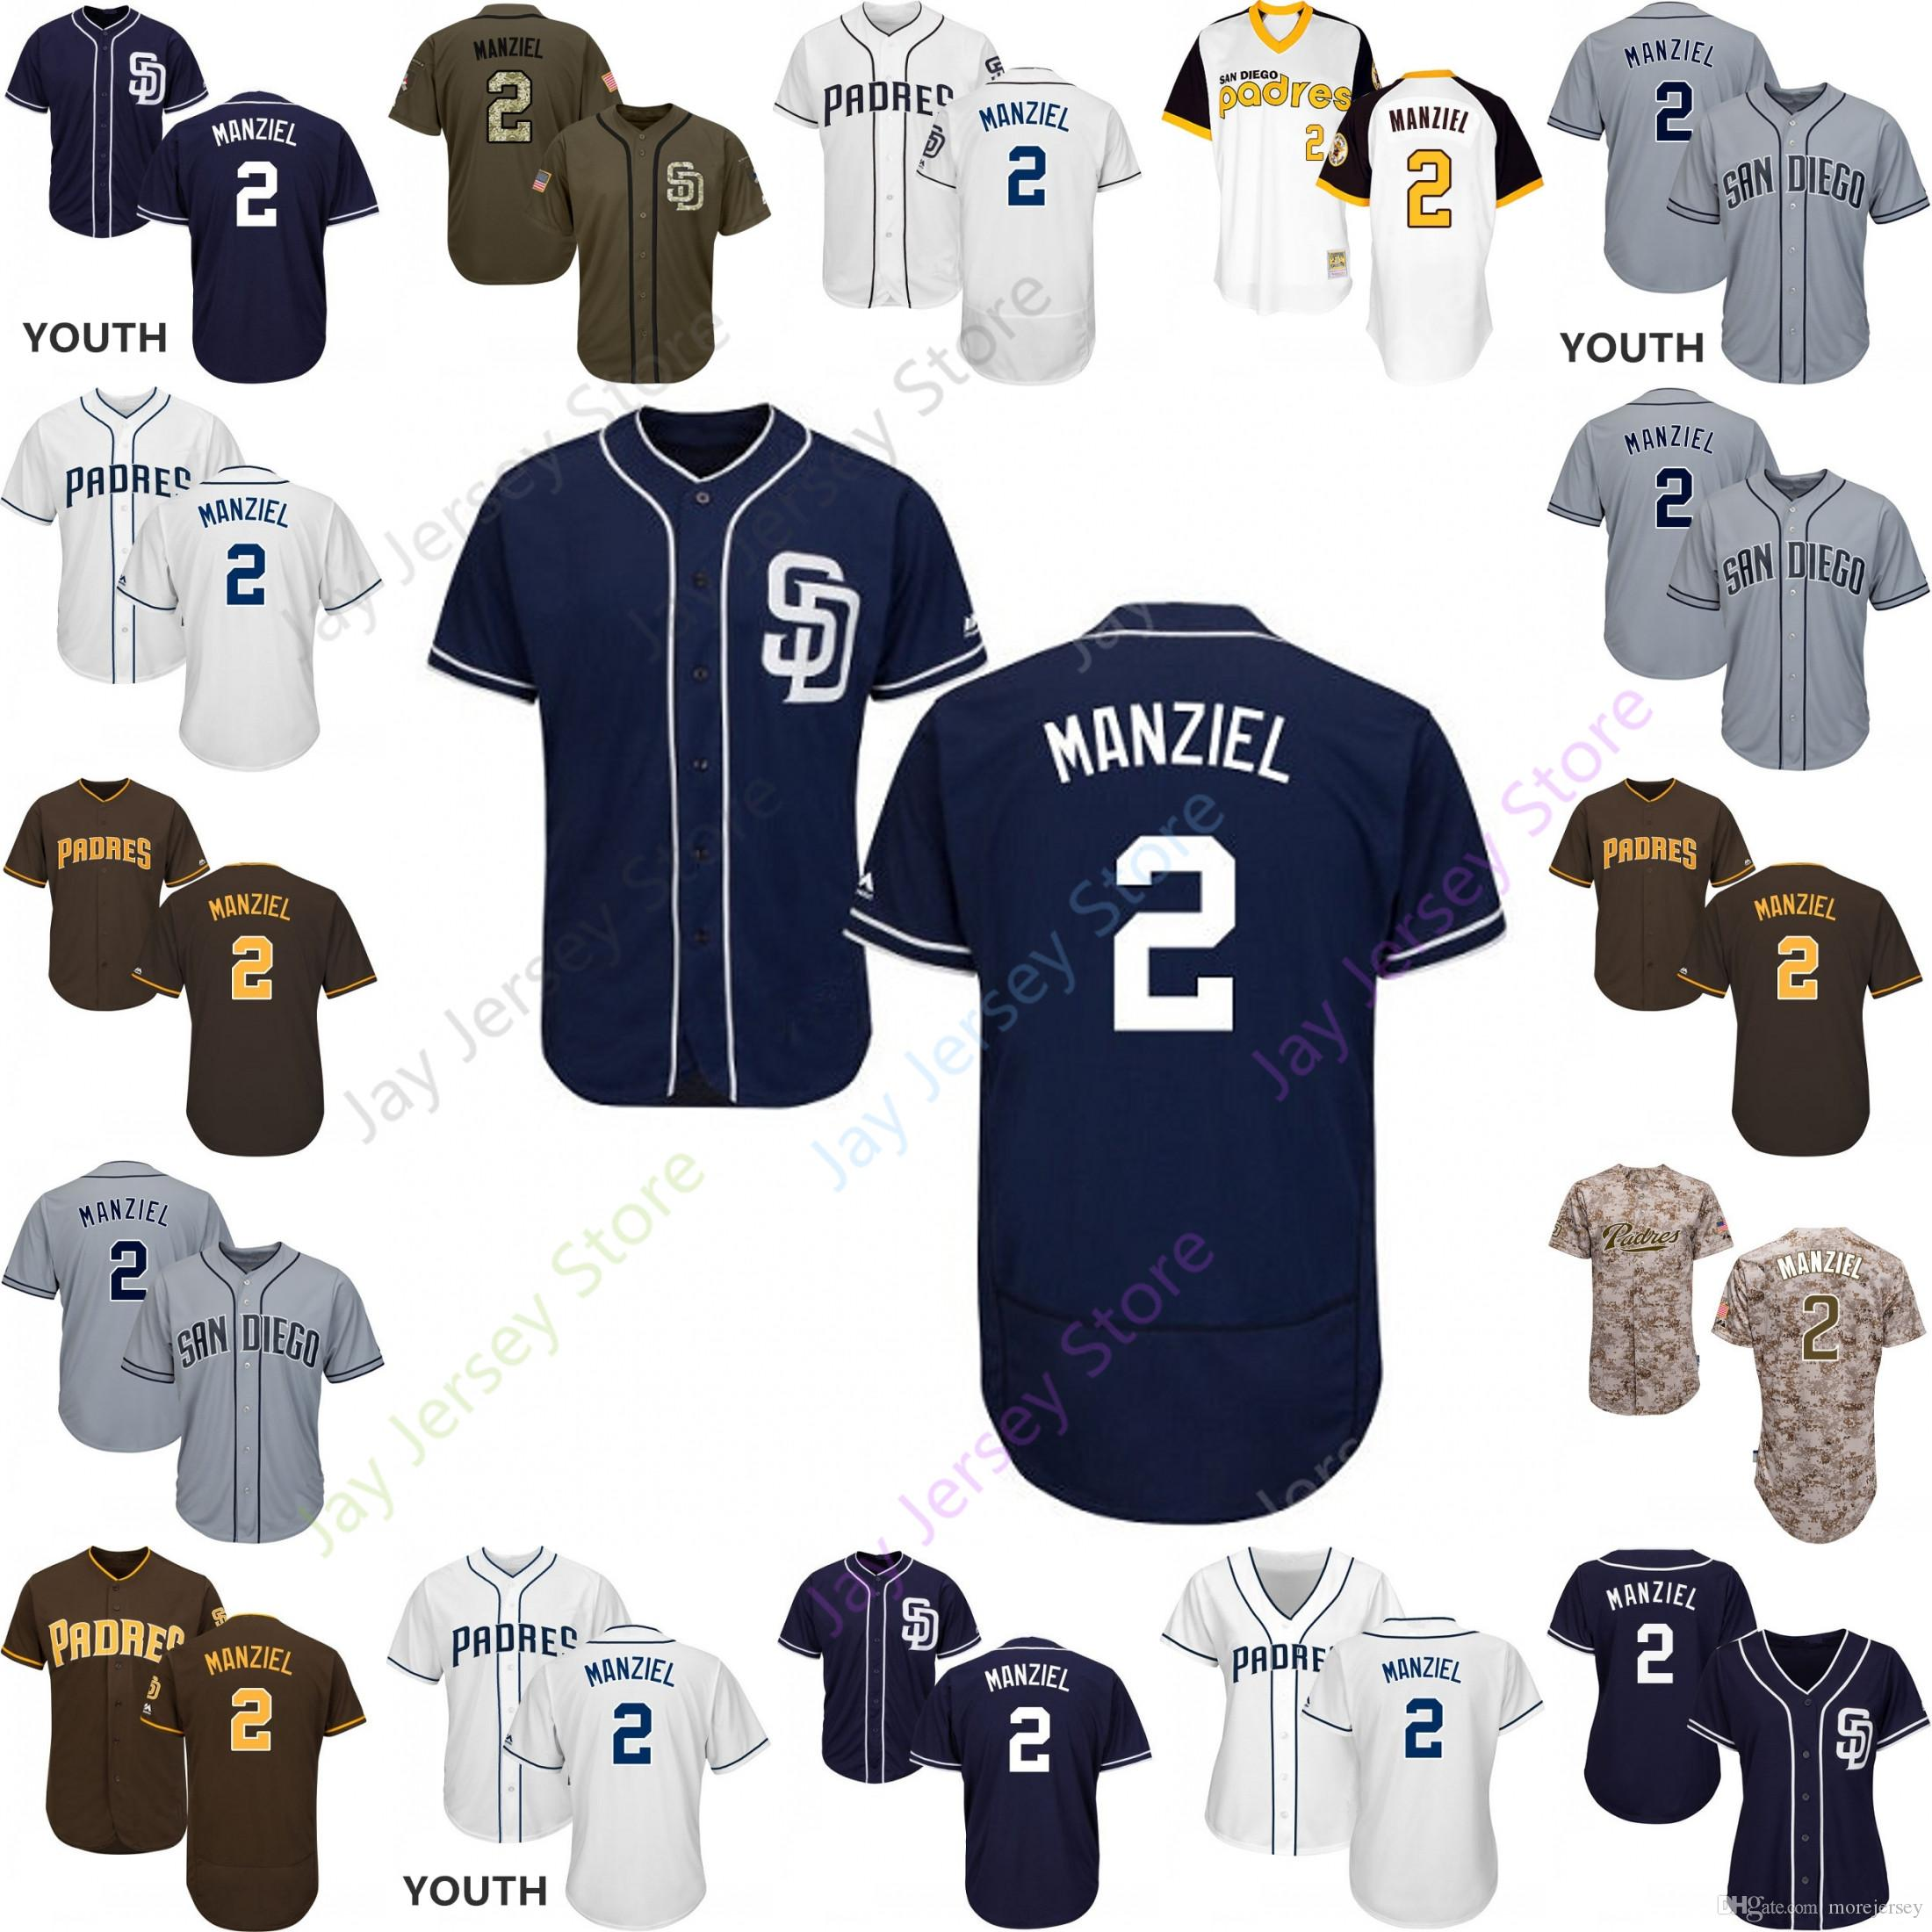 new style 08cbd ac036 2019 San Diego 2 Johnny Manziel Jersey Padres Jerseys Cool Base Flexbase  Home Away White Black Red Grey Pullover Button Men Women Youth